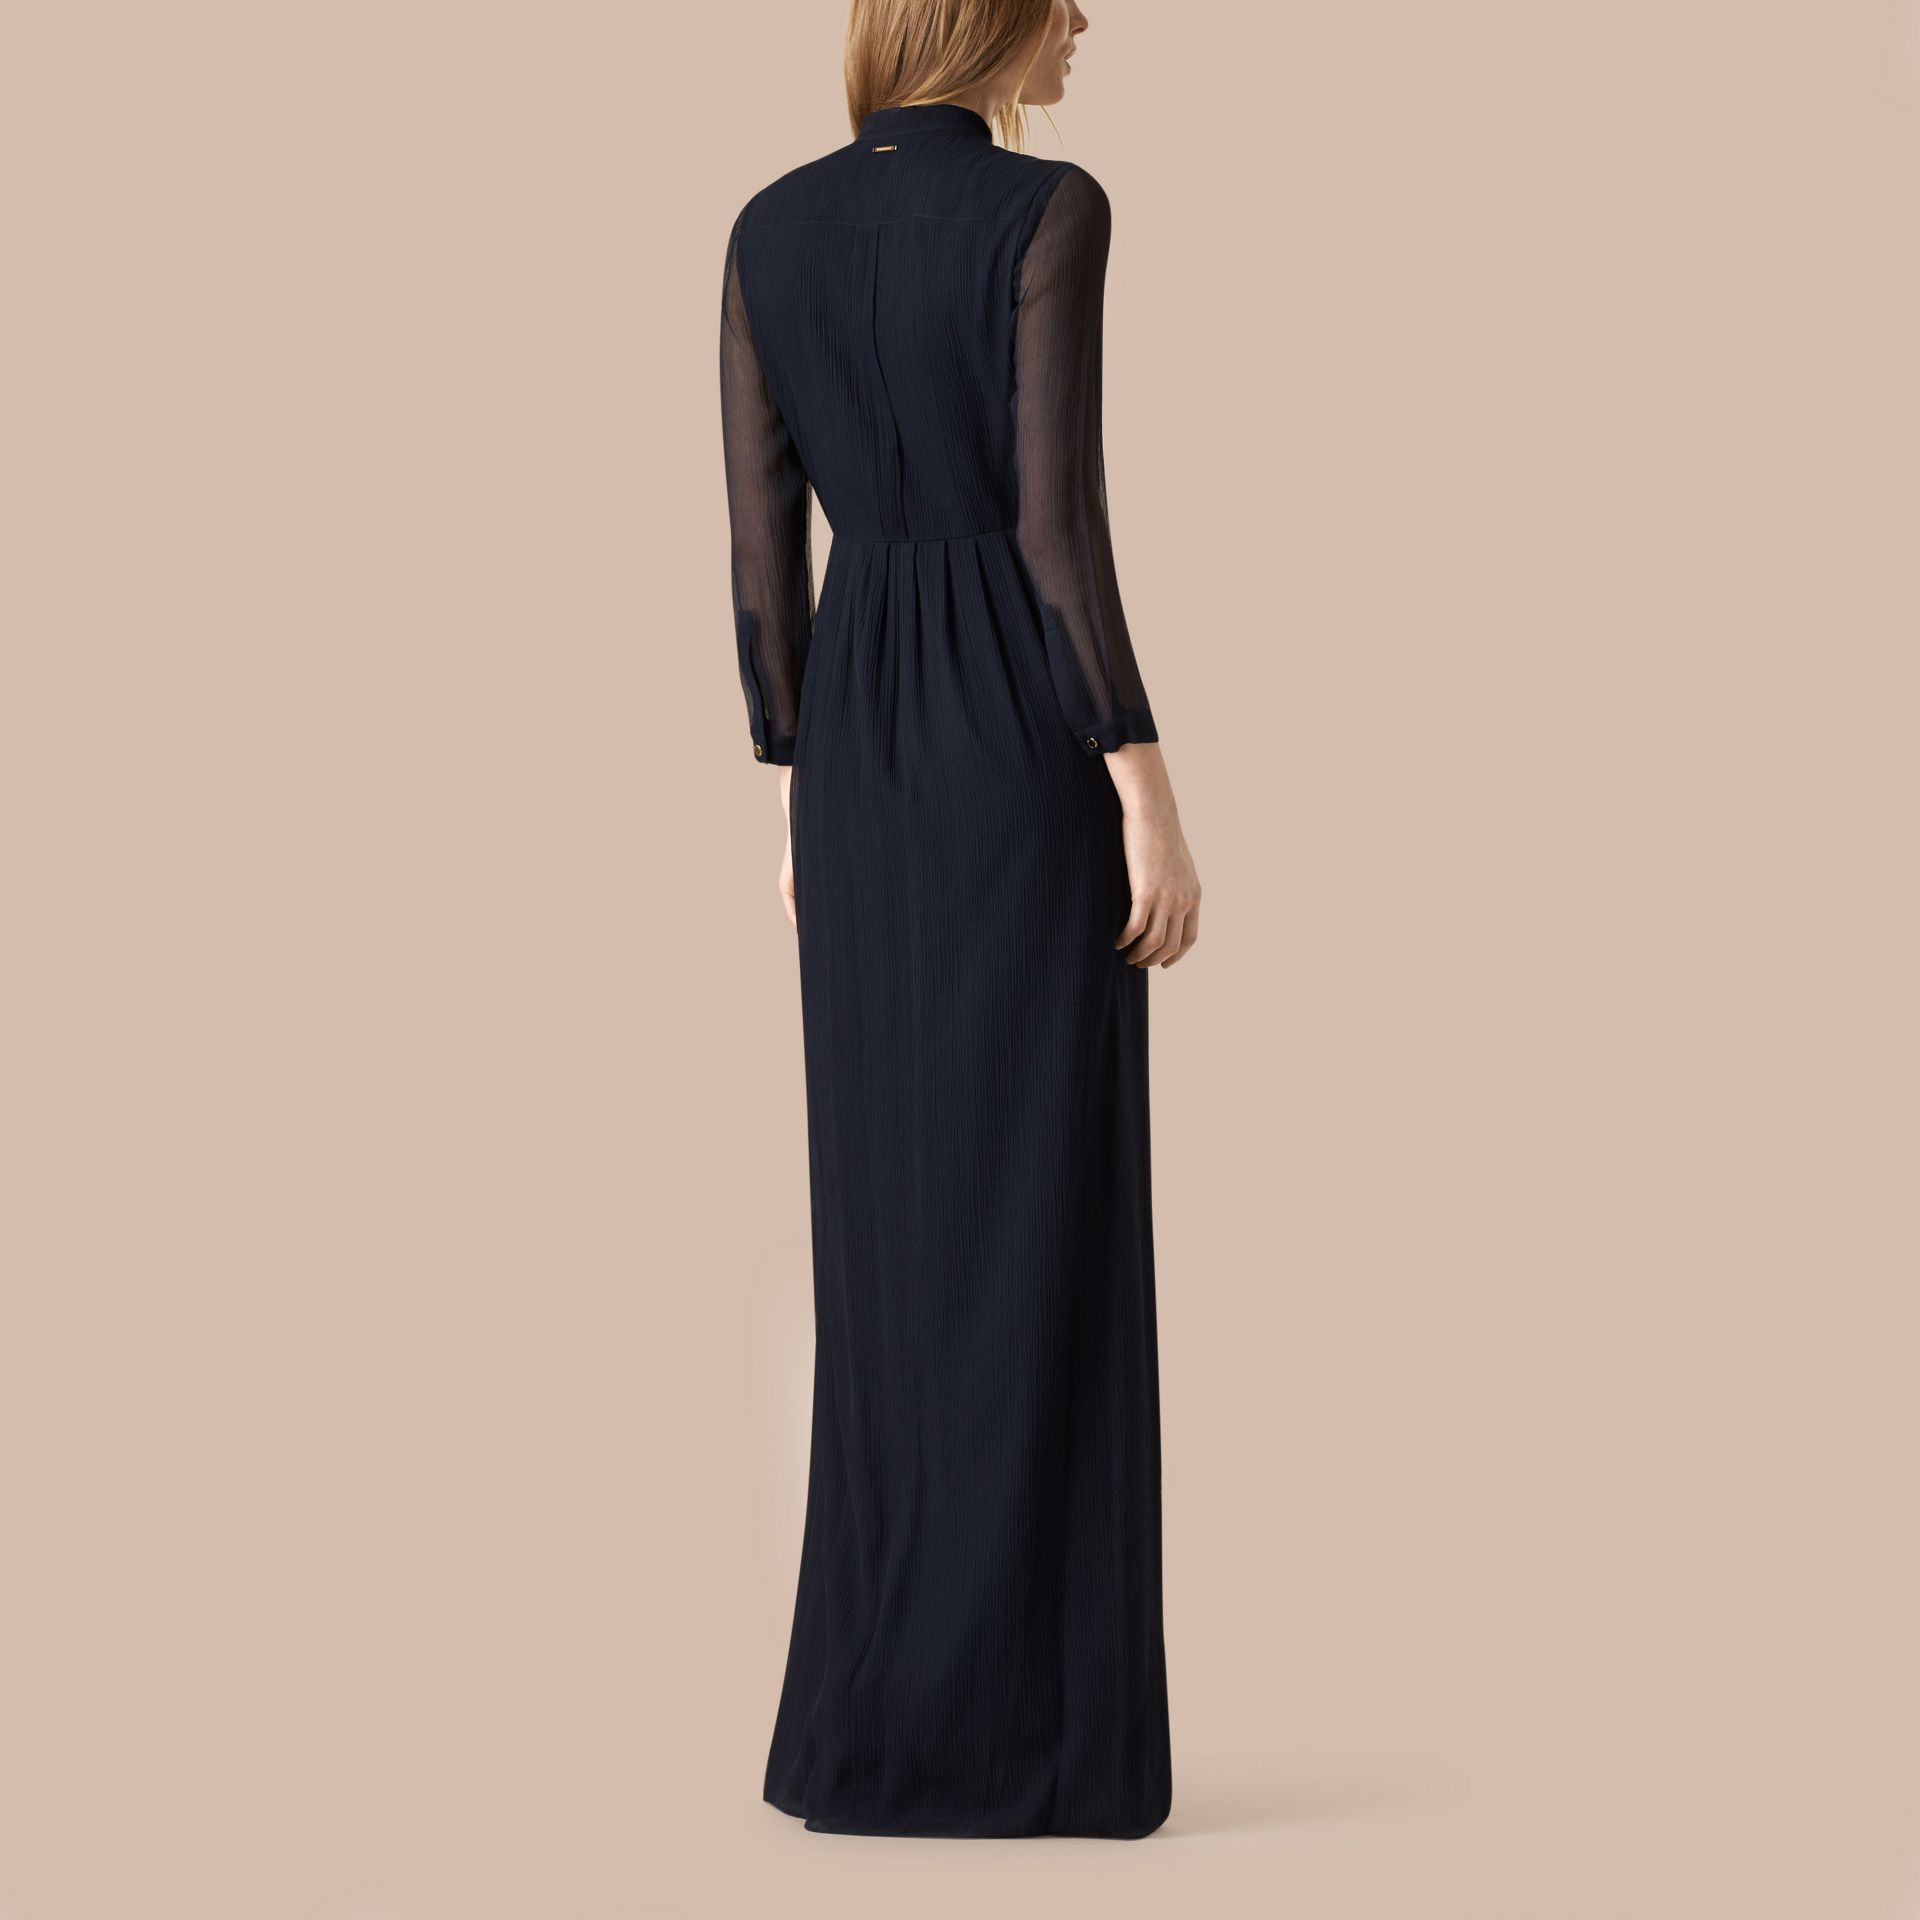 Navy Pleat Detail Floor-length Silk Dress - gallery image 3